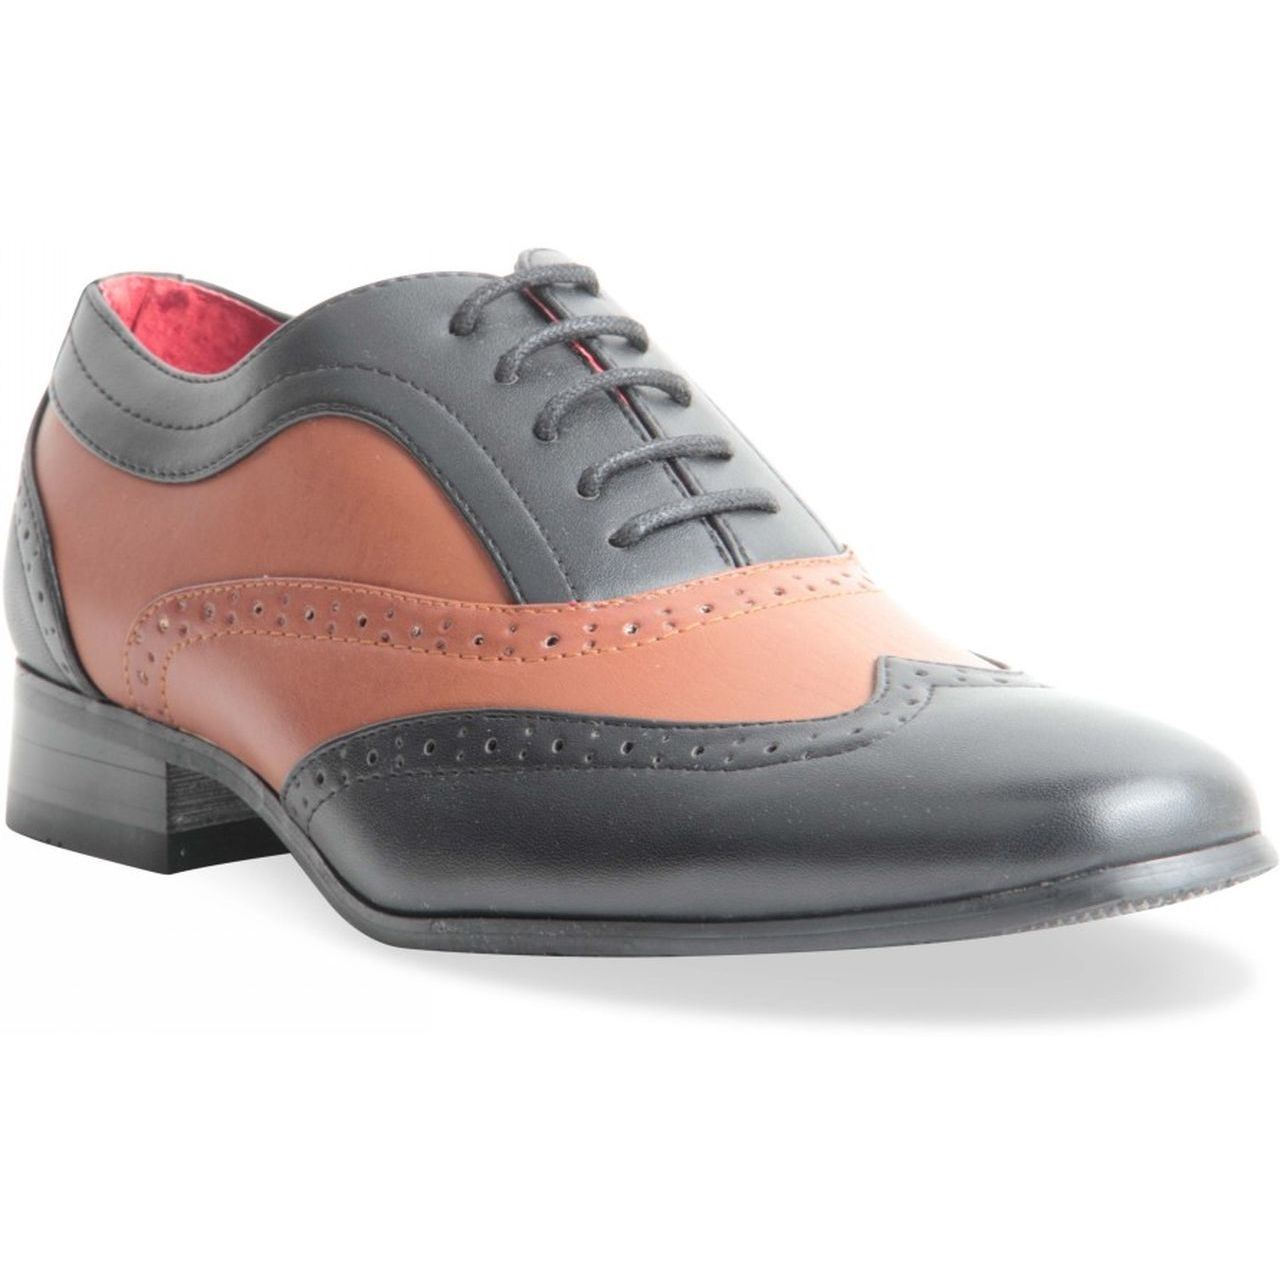 Oxford Shoes Matte Black